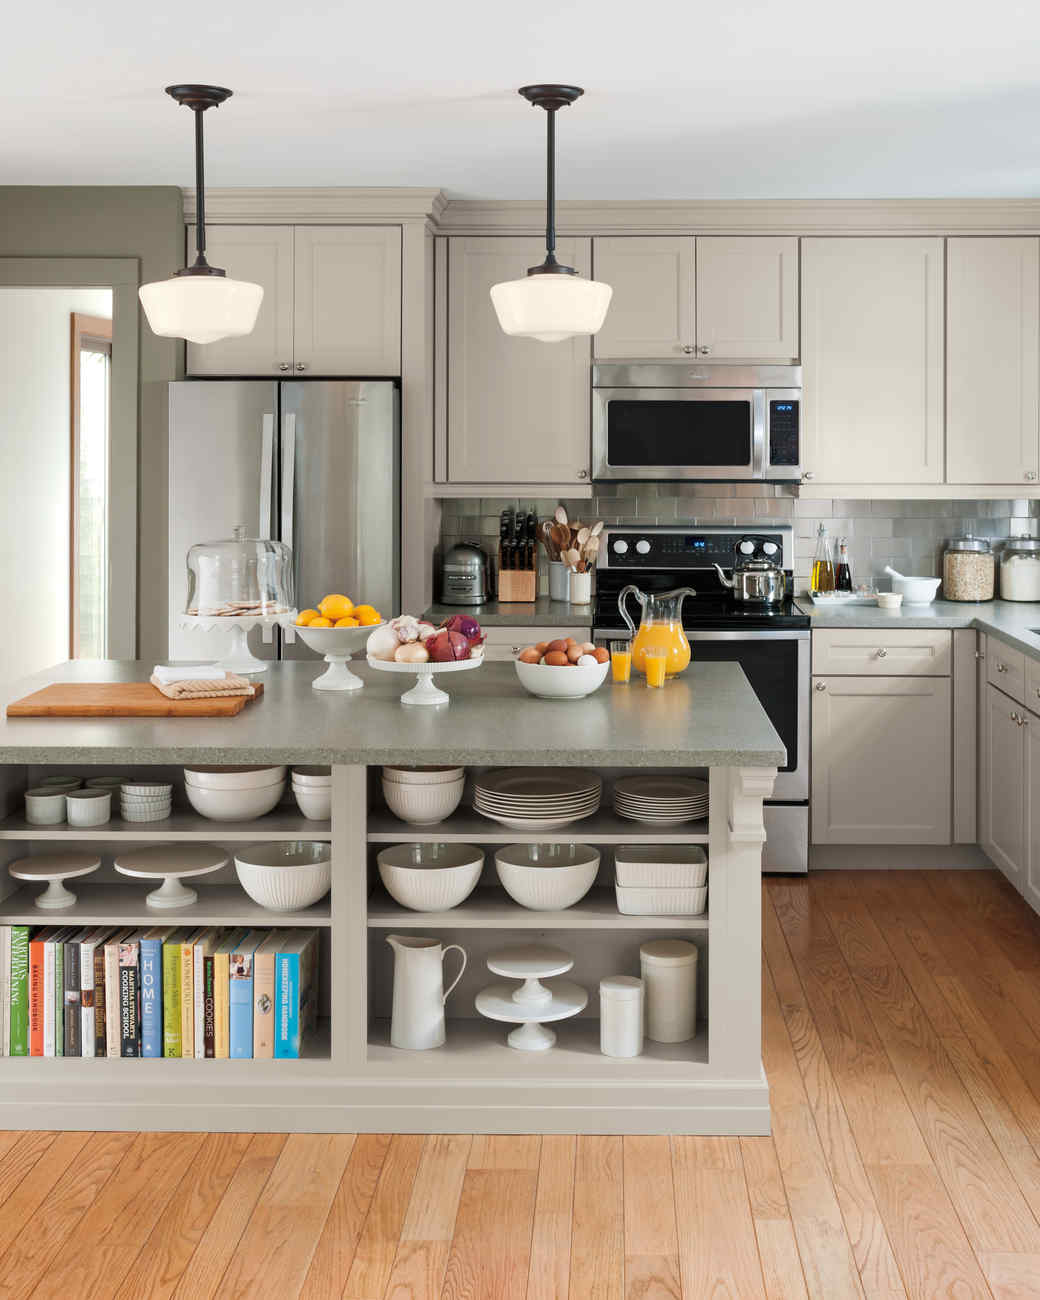 Select Your Kitchen Style Martha Stewart - Shaker style furniture for your kitchen cabinets